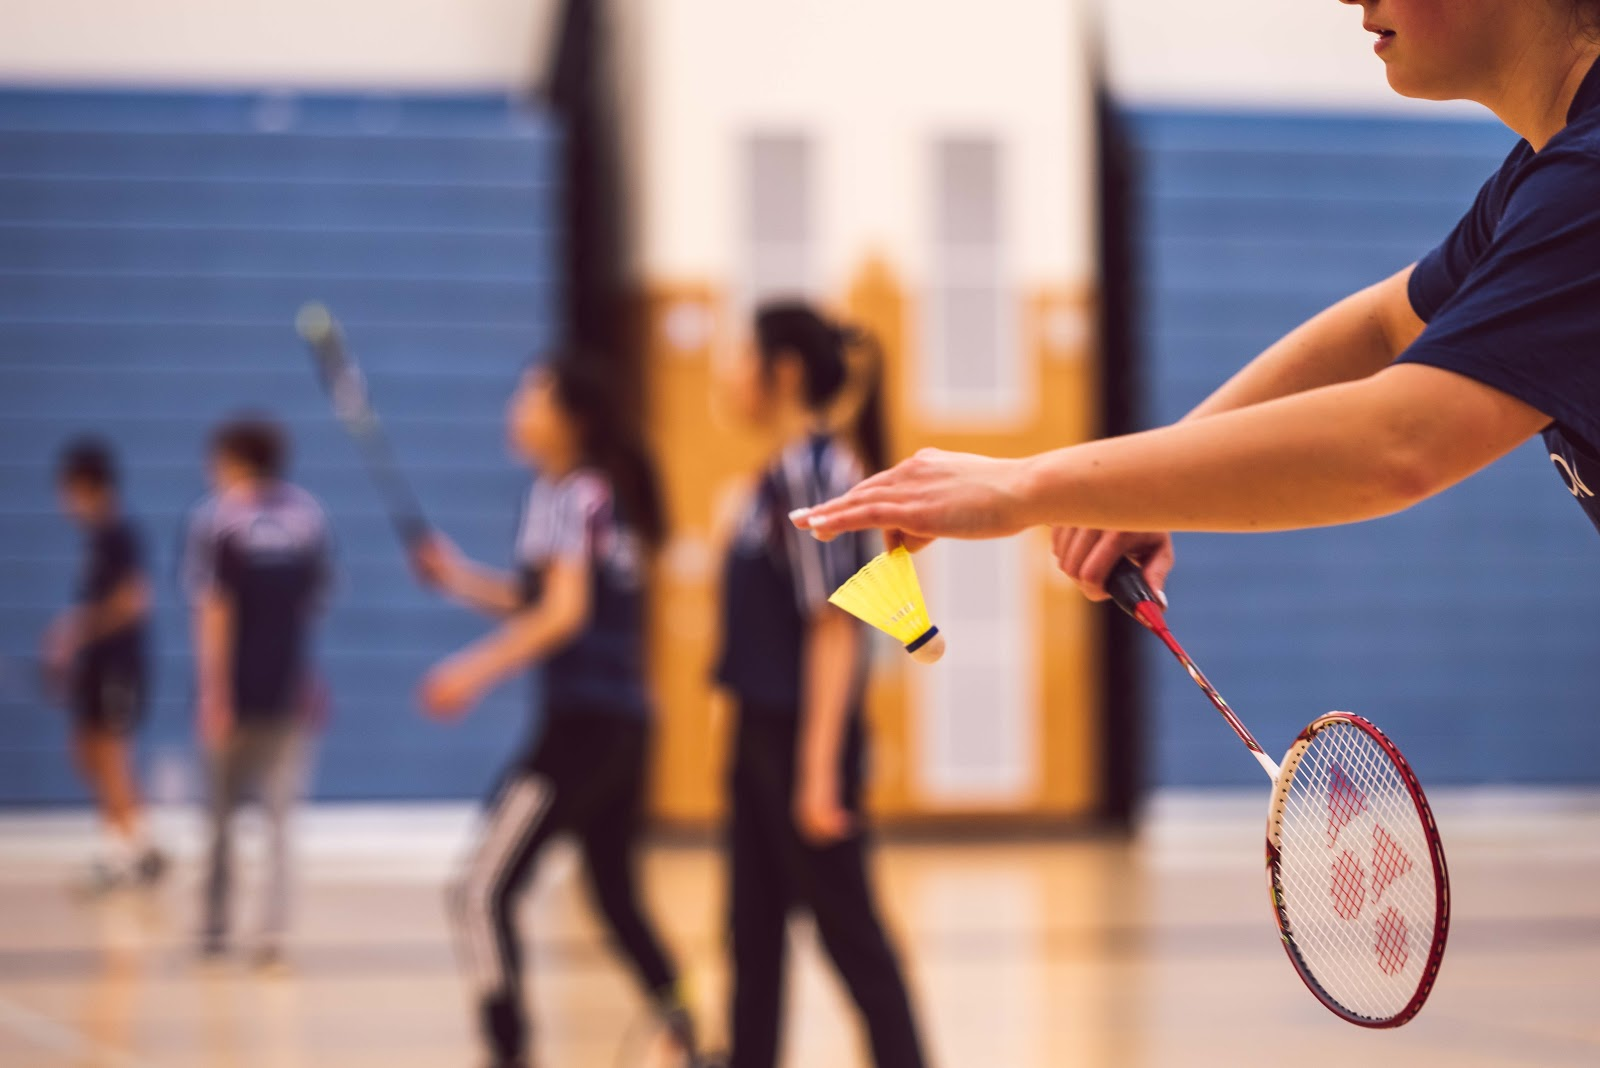 A group of students playing badminton